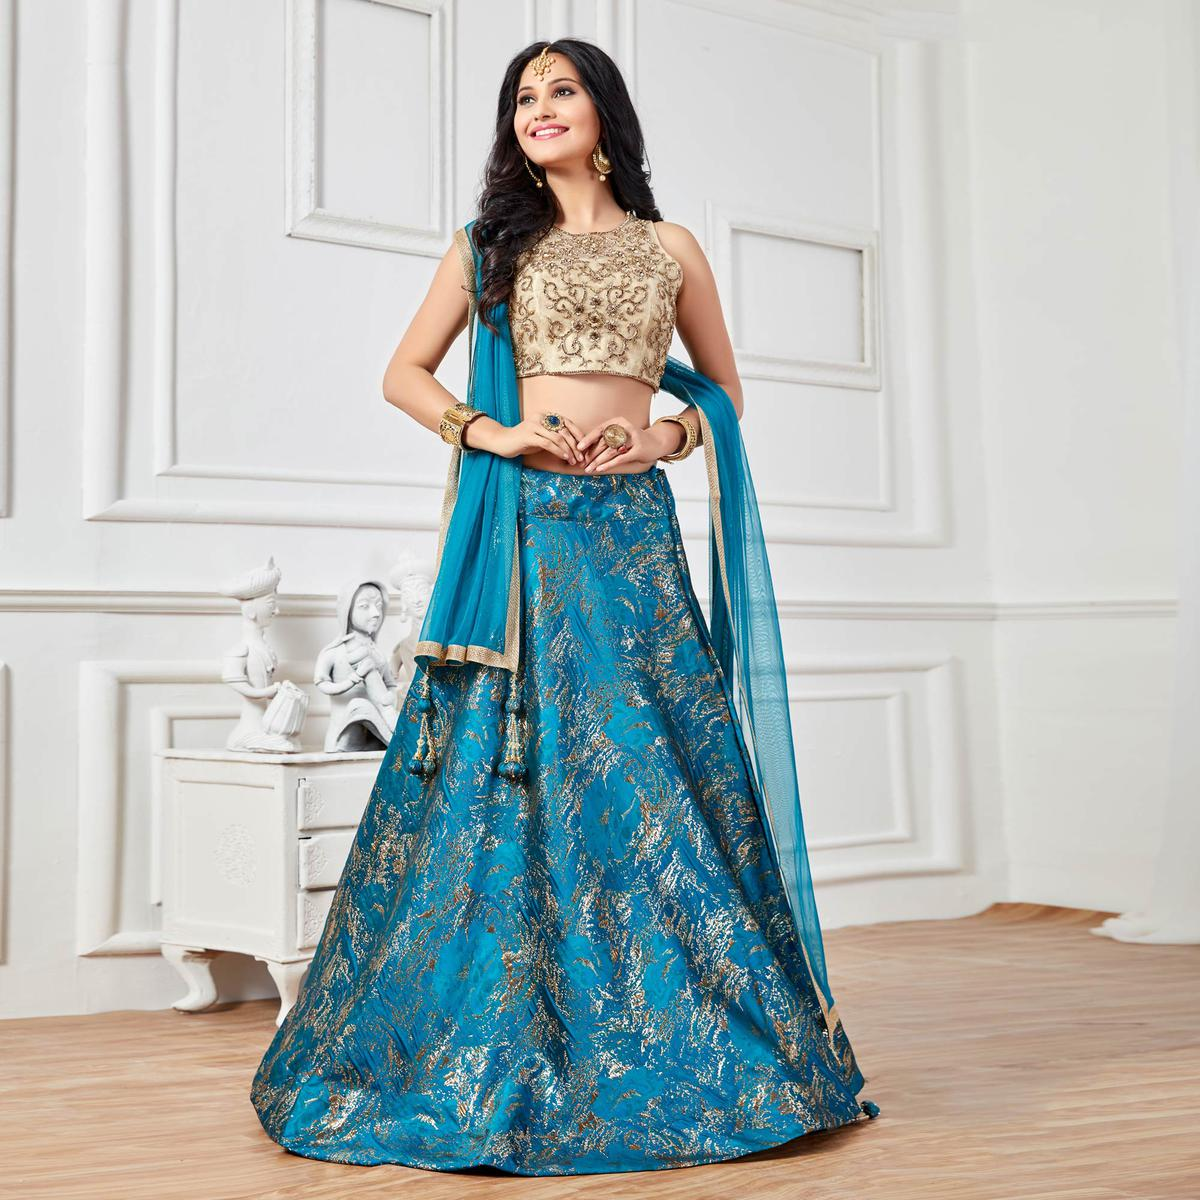 e0bff74ee7 Buy Charismatic Blue Colored Lehenga Choli for womens online India, Best  Prices, Reviews - Peachmode